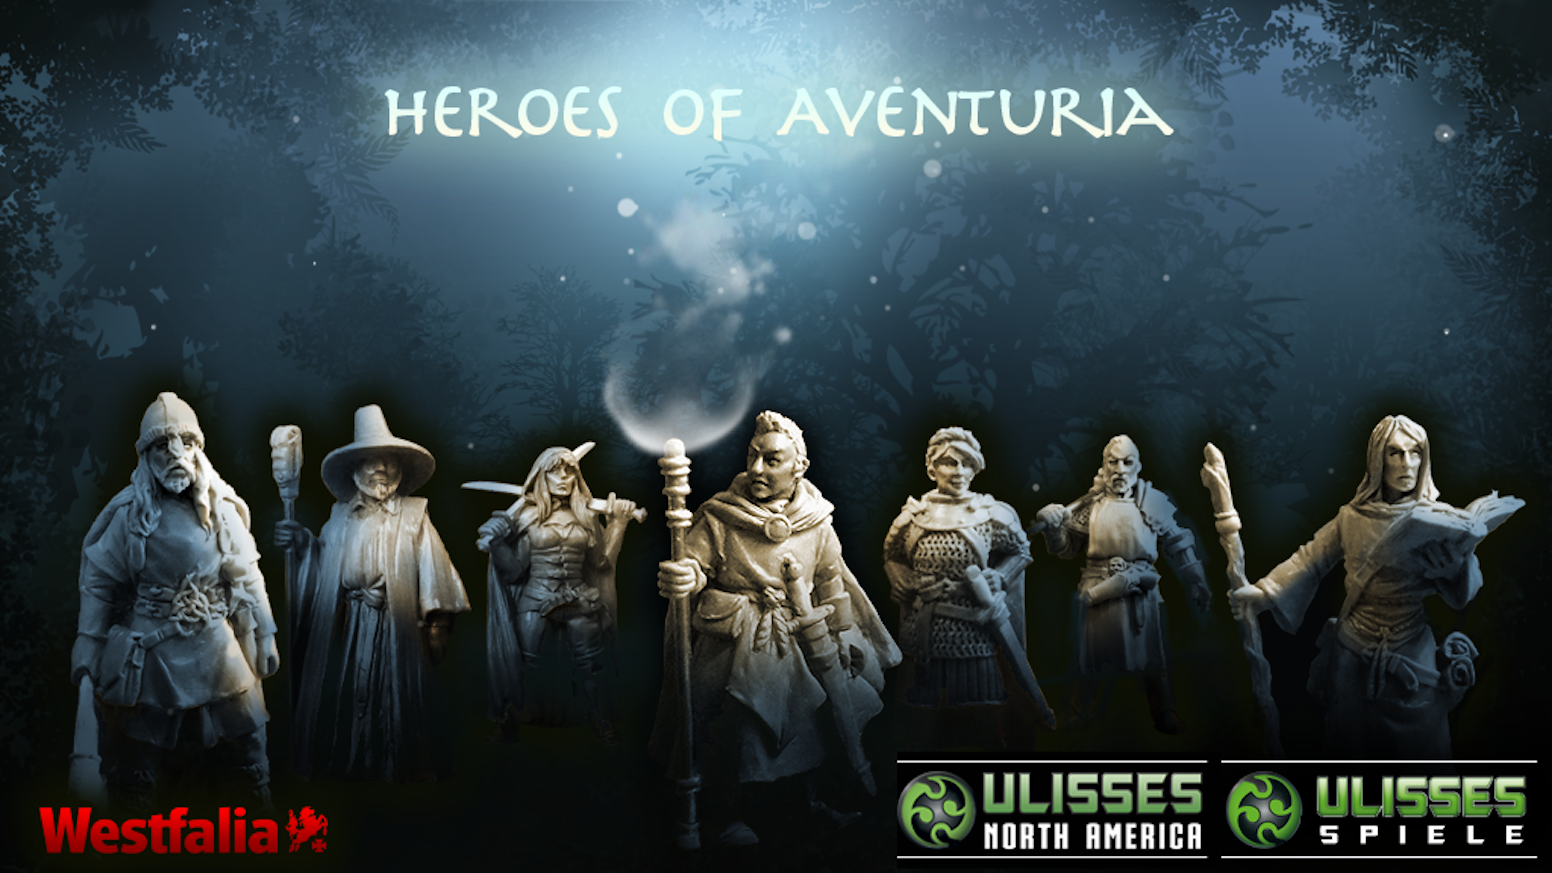 This is a collection of 28mm miniatures that depict Heroes from Aventuria, the main setting of the RPG The Dark Eye/Das Schwarze Auge.